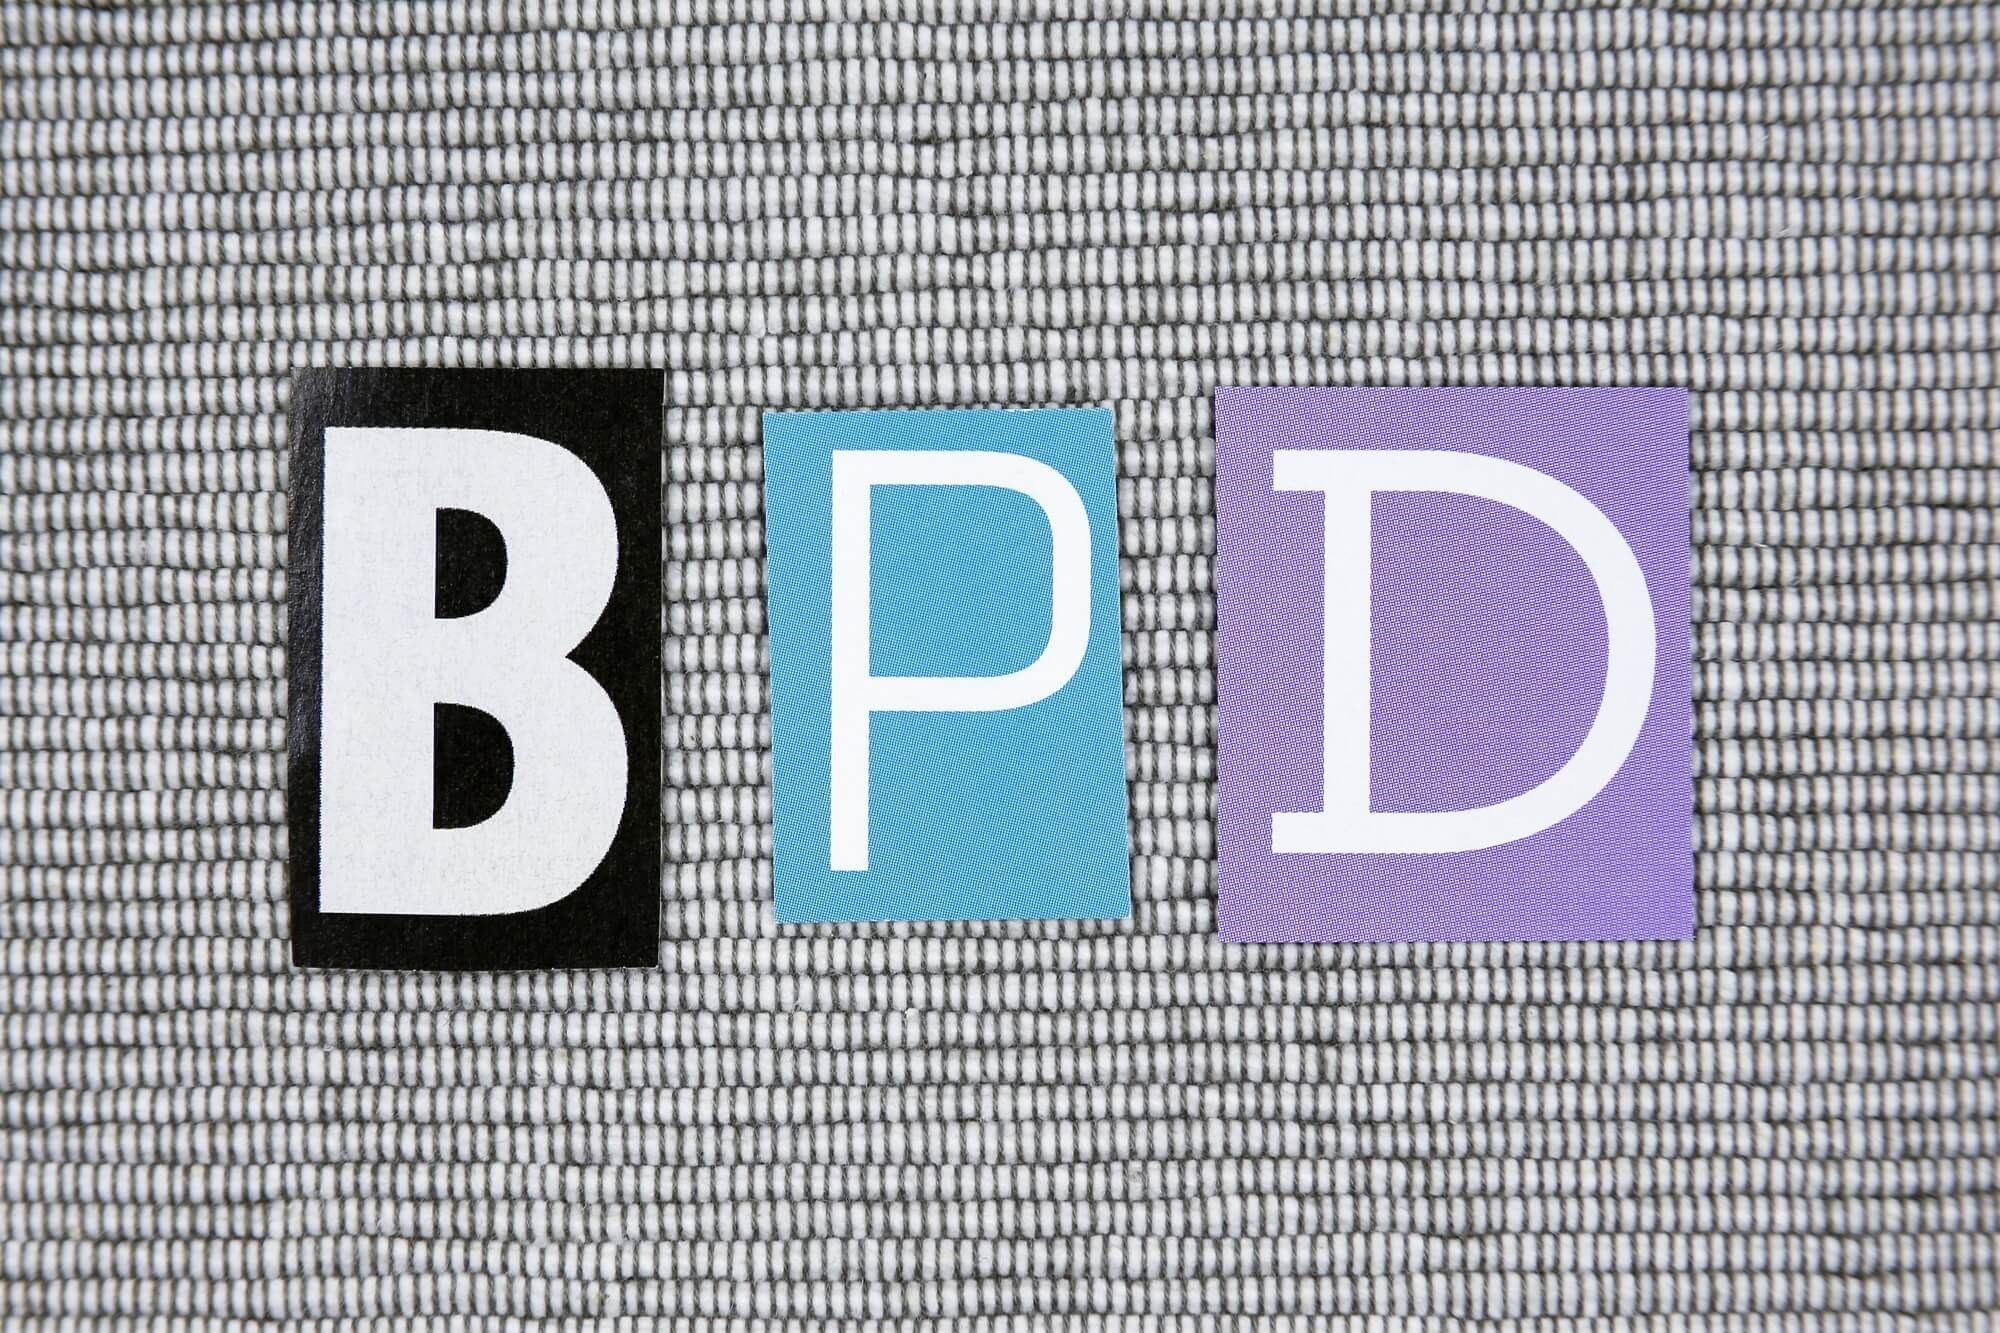 Updates in Borderline Personality Disorder: Your Questions Answered